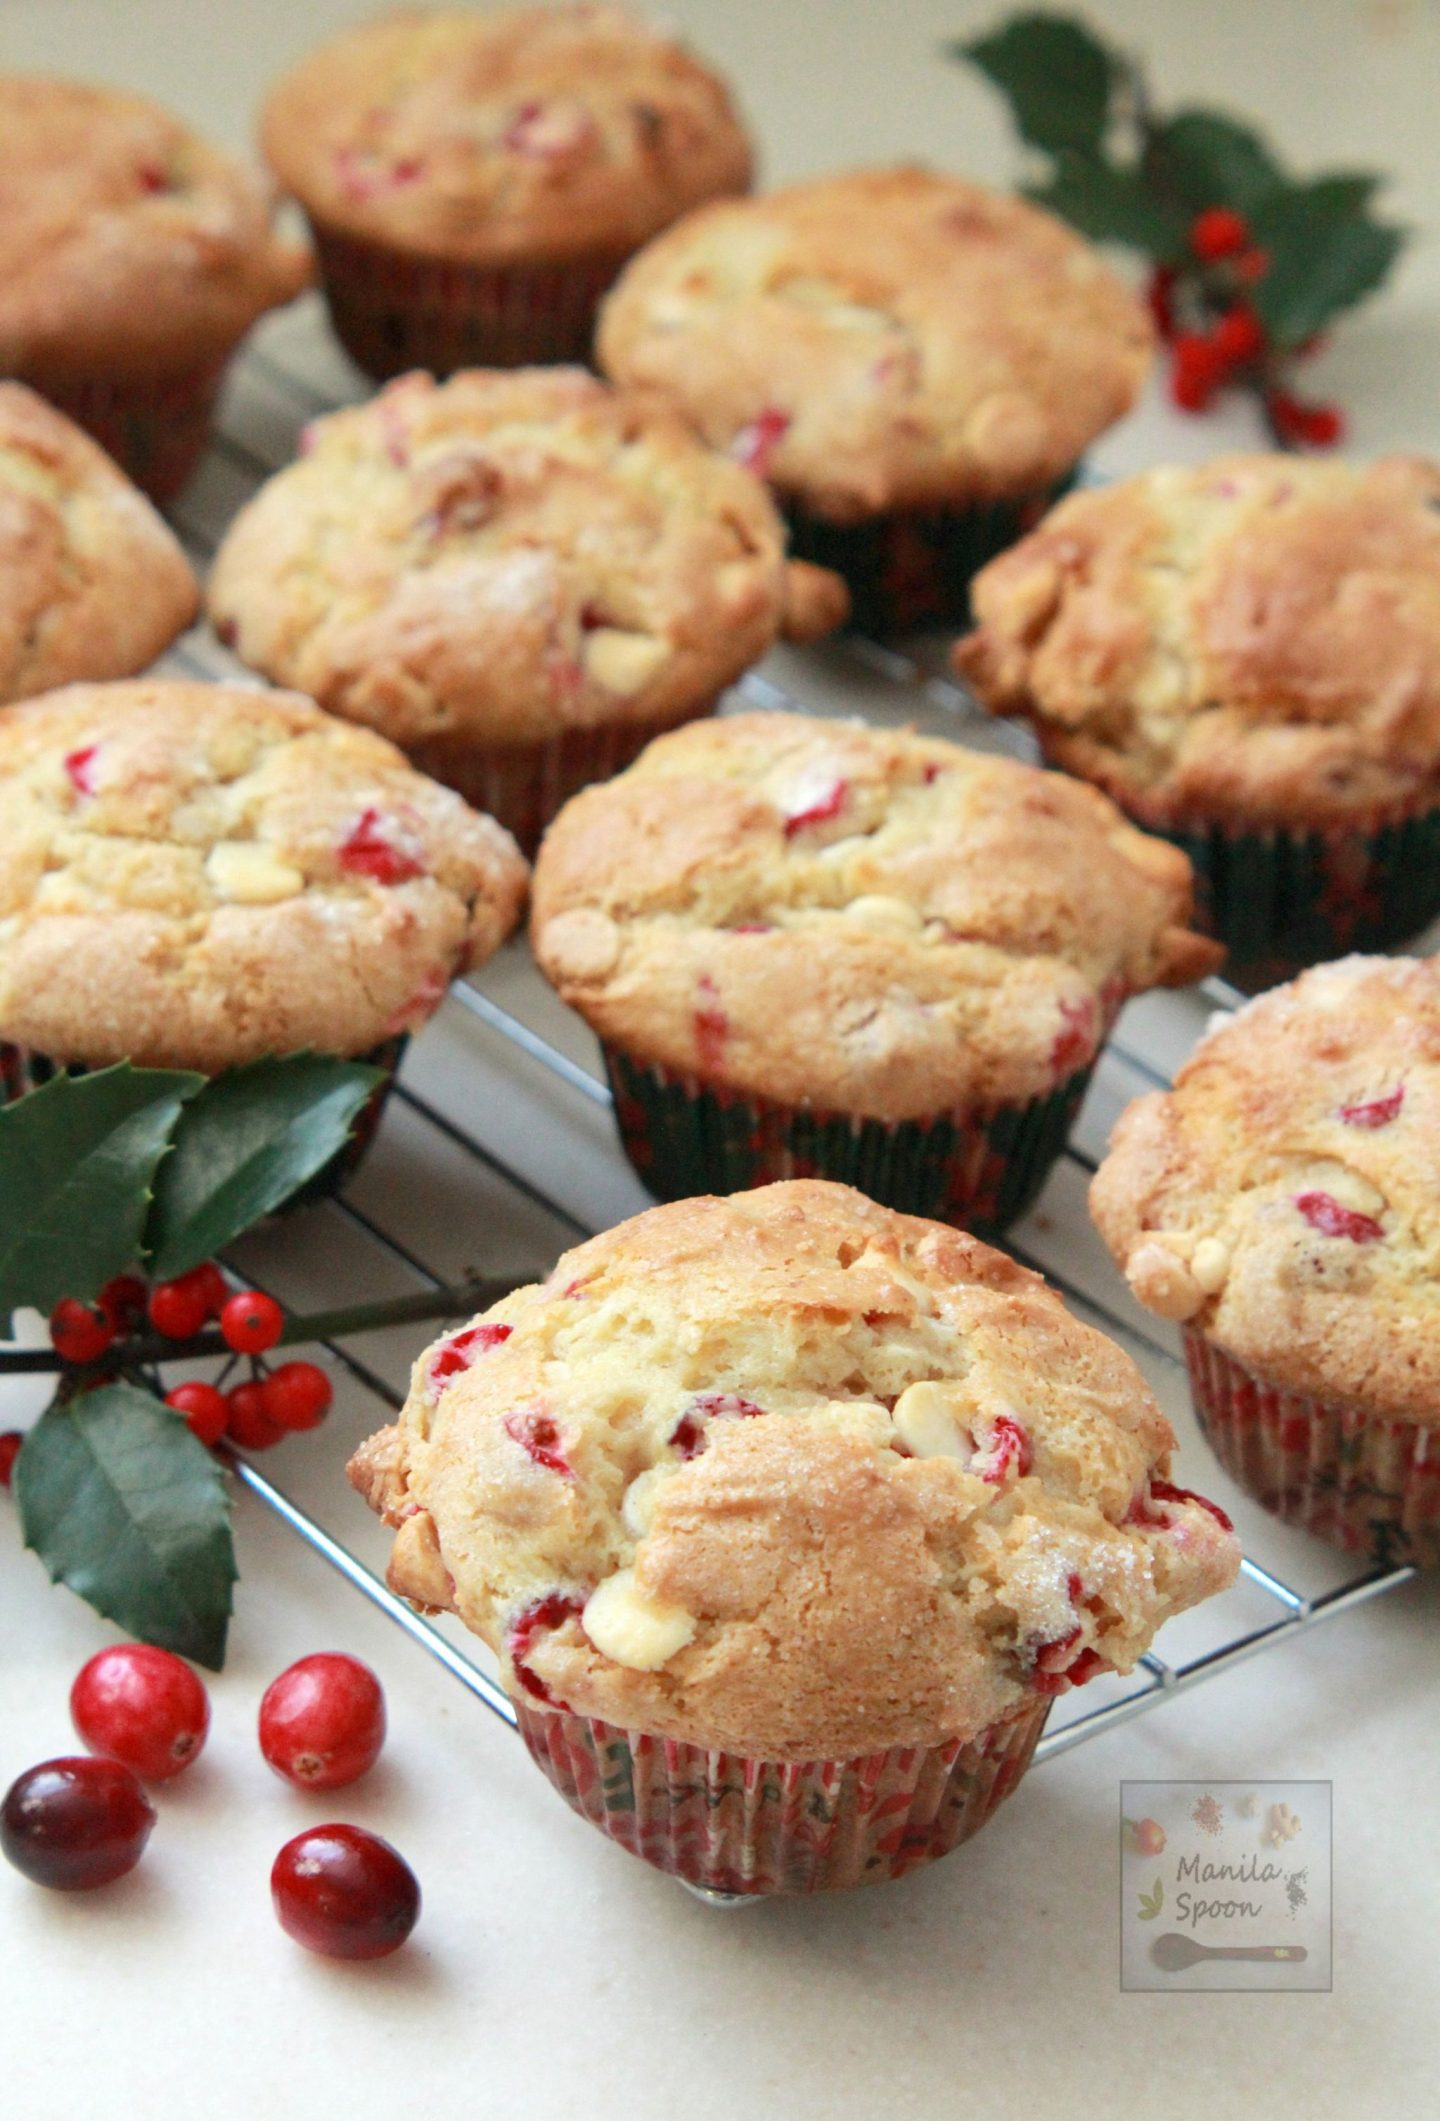 Loaded with white chocolate, dotted with cranberries and deliciously moist and sweet-tangy, these pretty muffins are the perfect holiday treat!